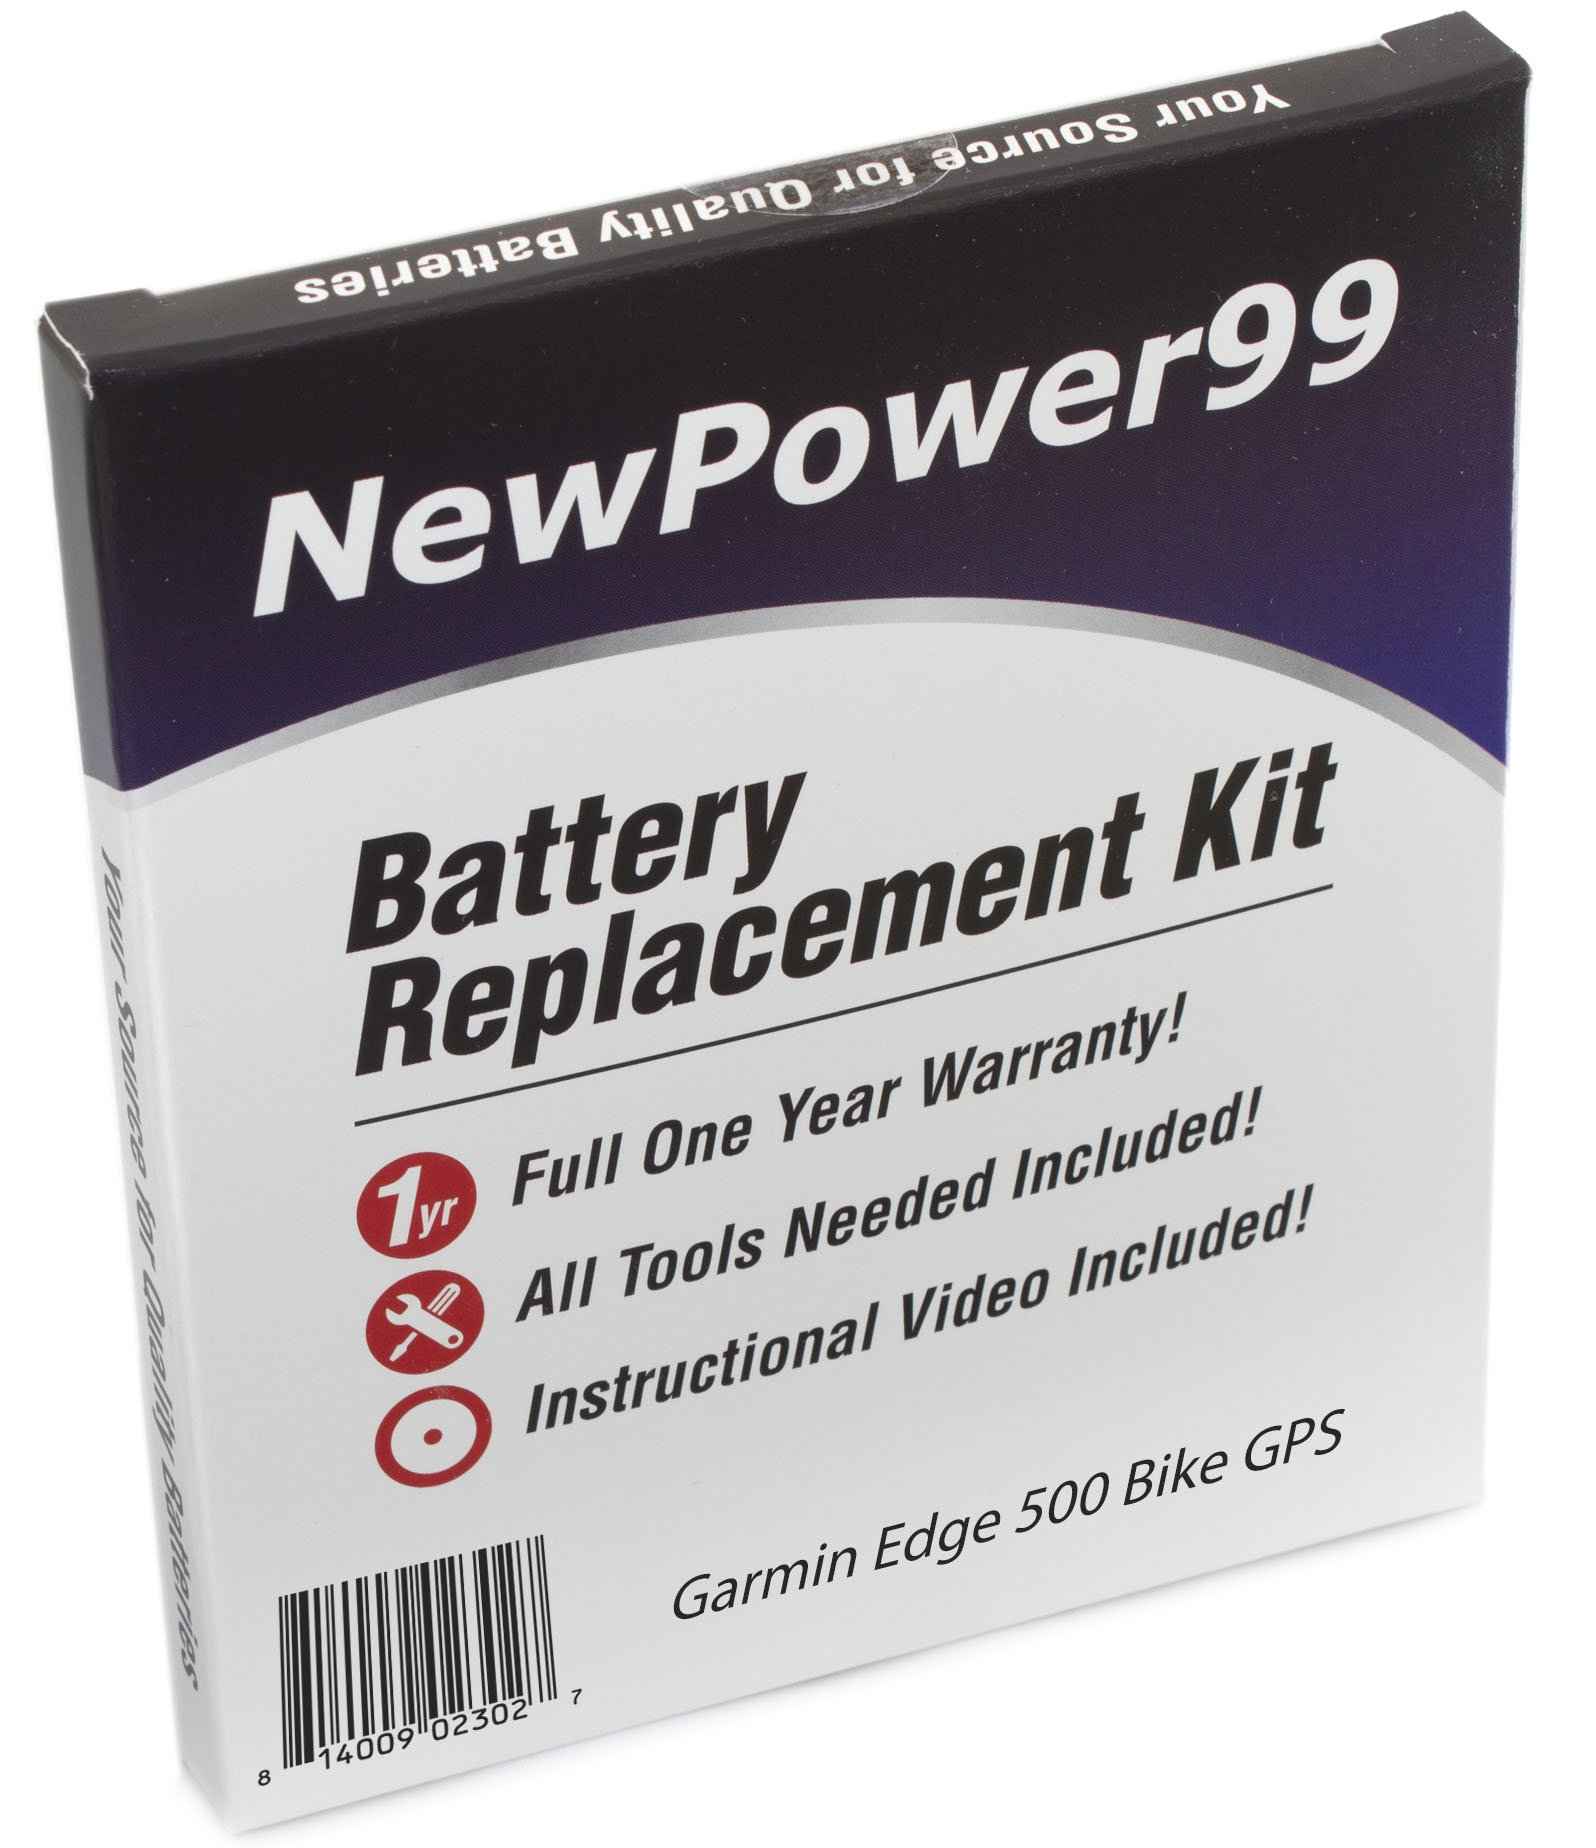 Edge 500 Garmin Bike GPS Battery Replacement Kit with Installation Video, Tools, and Extended Life Battery by NewPower99